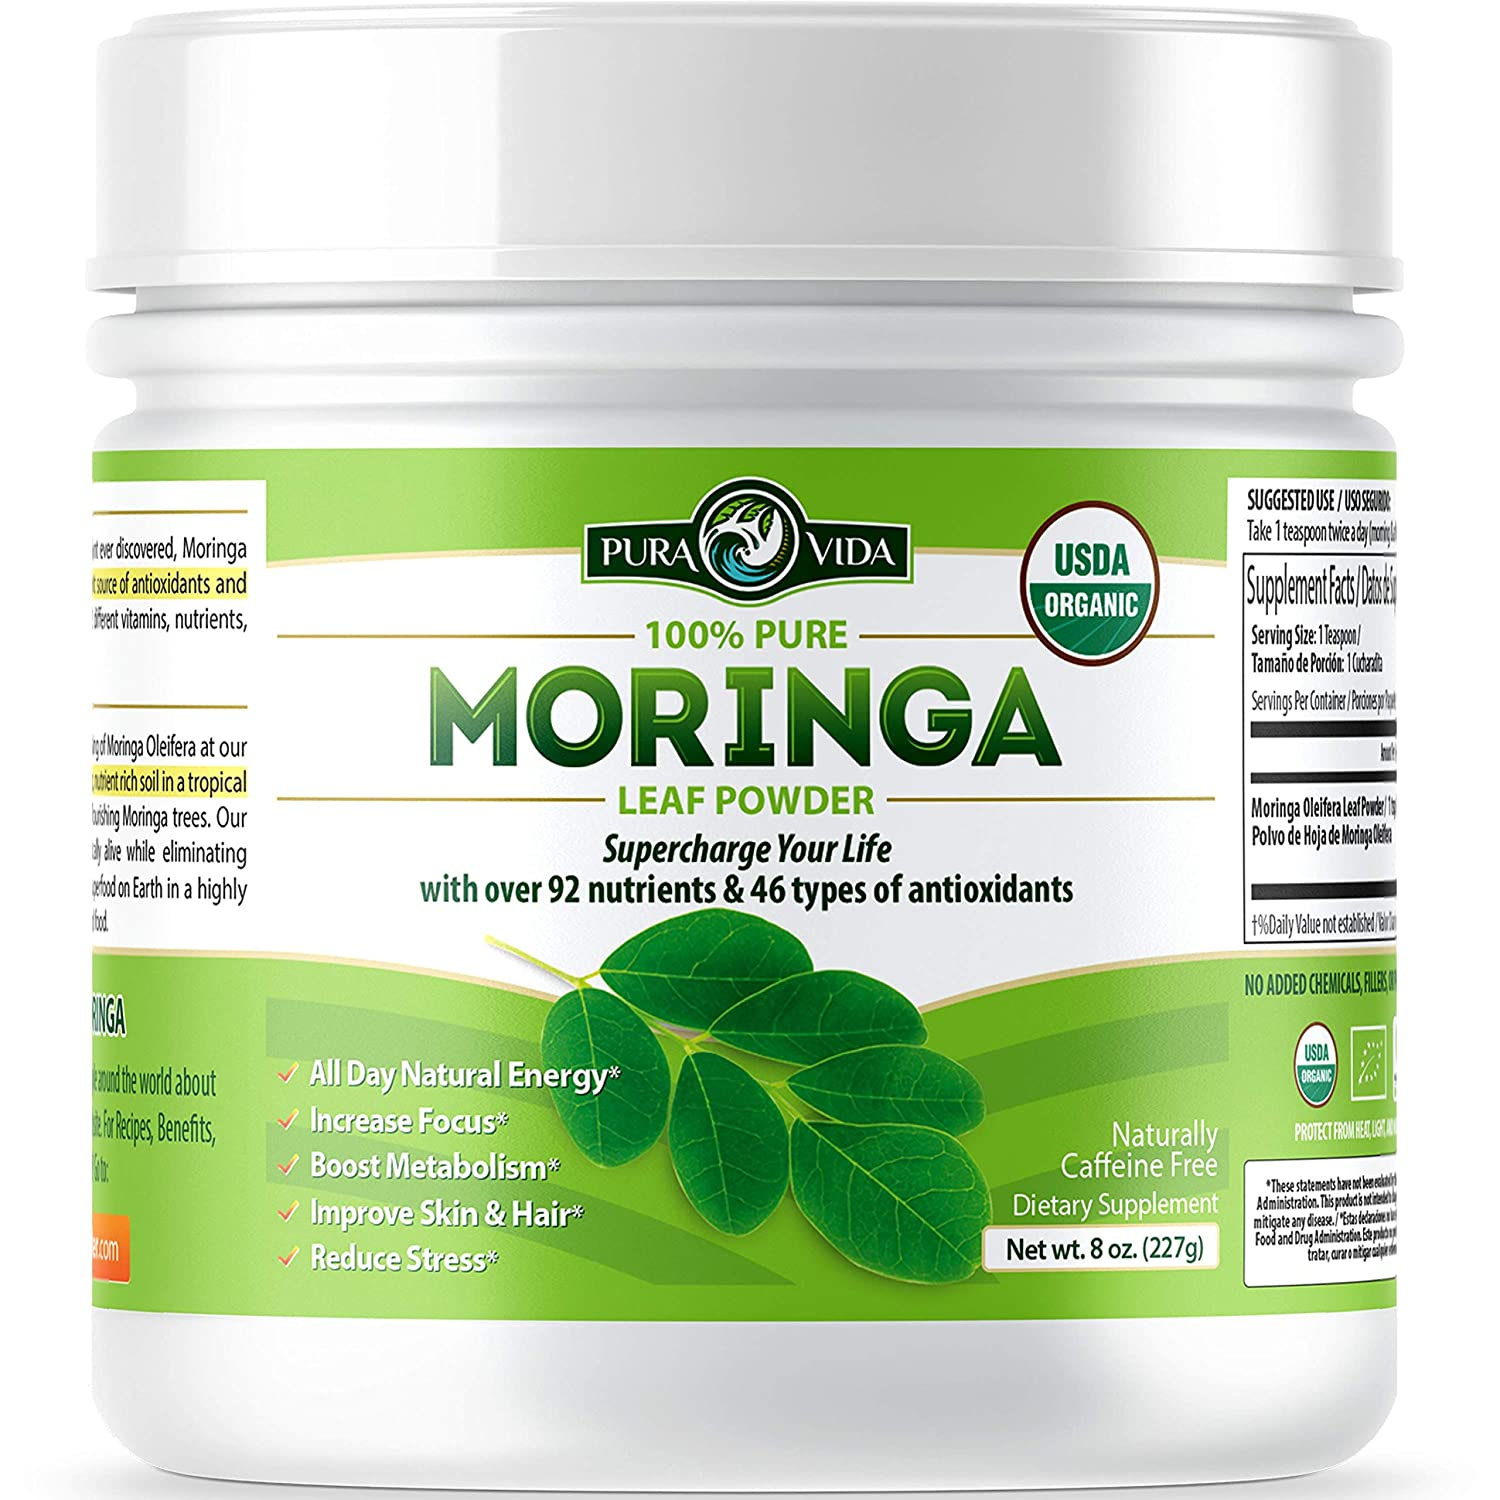 Organic Moringa Oleifera Leaf Powder - USDA Certified Organic Single Origin Moringa